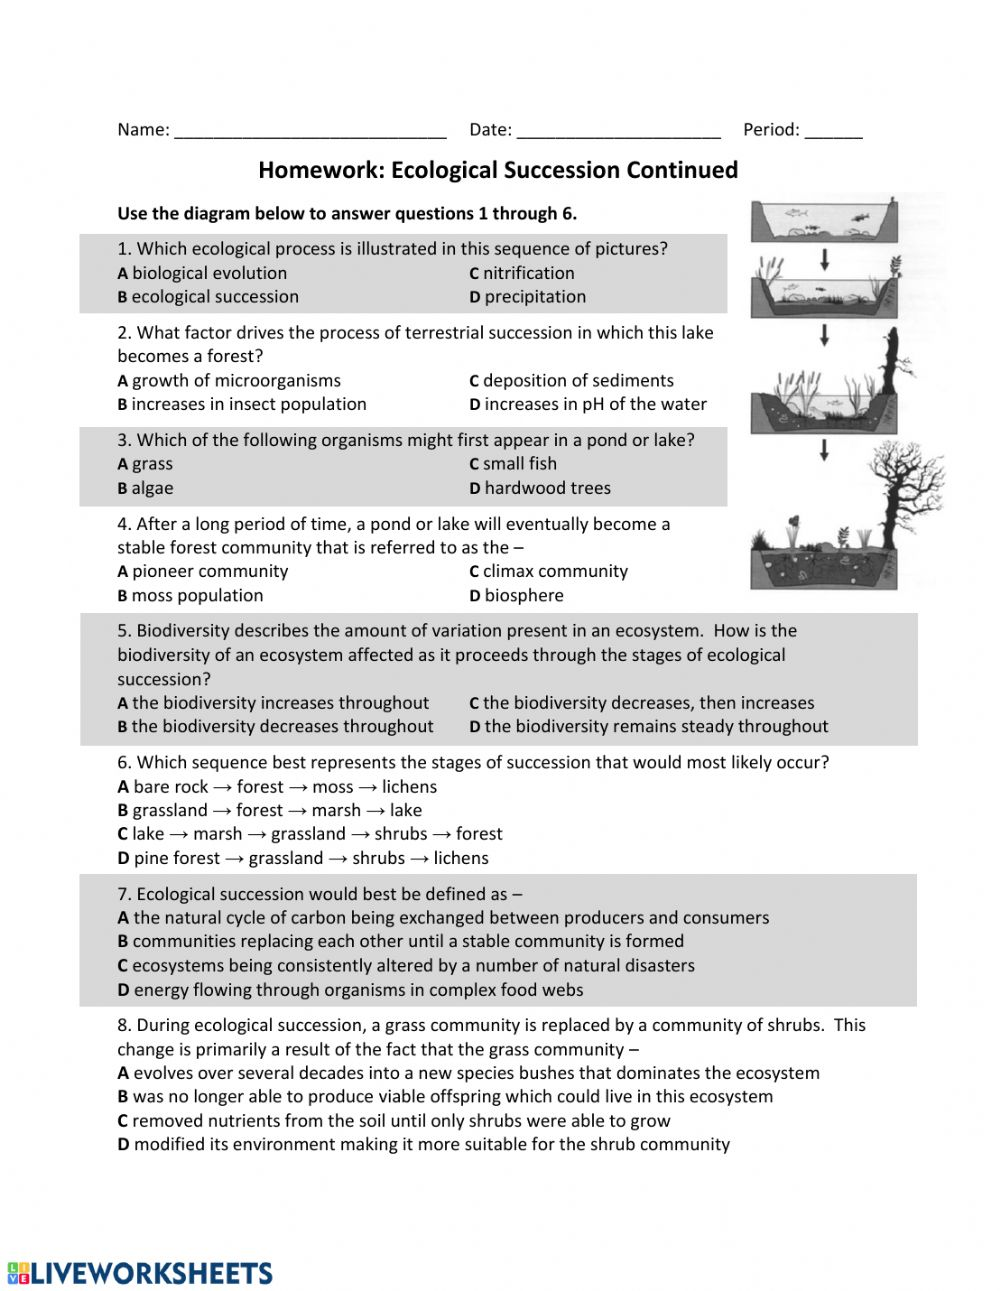 Ecological Succession Worksheet Answer Key : ecological, succession, worksheet, answer, Succession, Worksheet